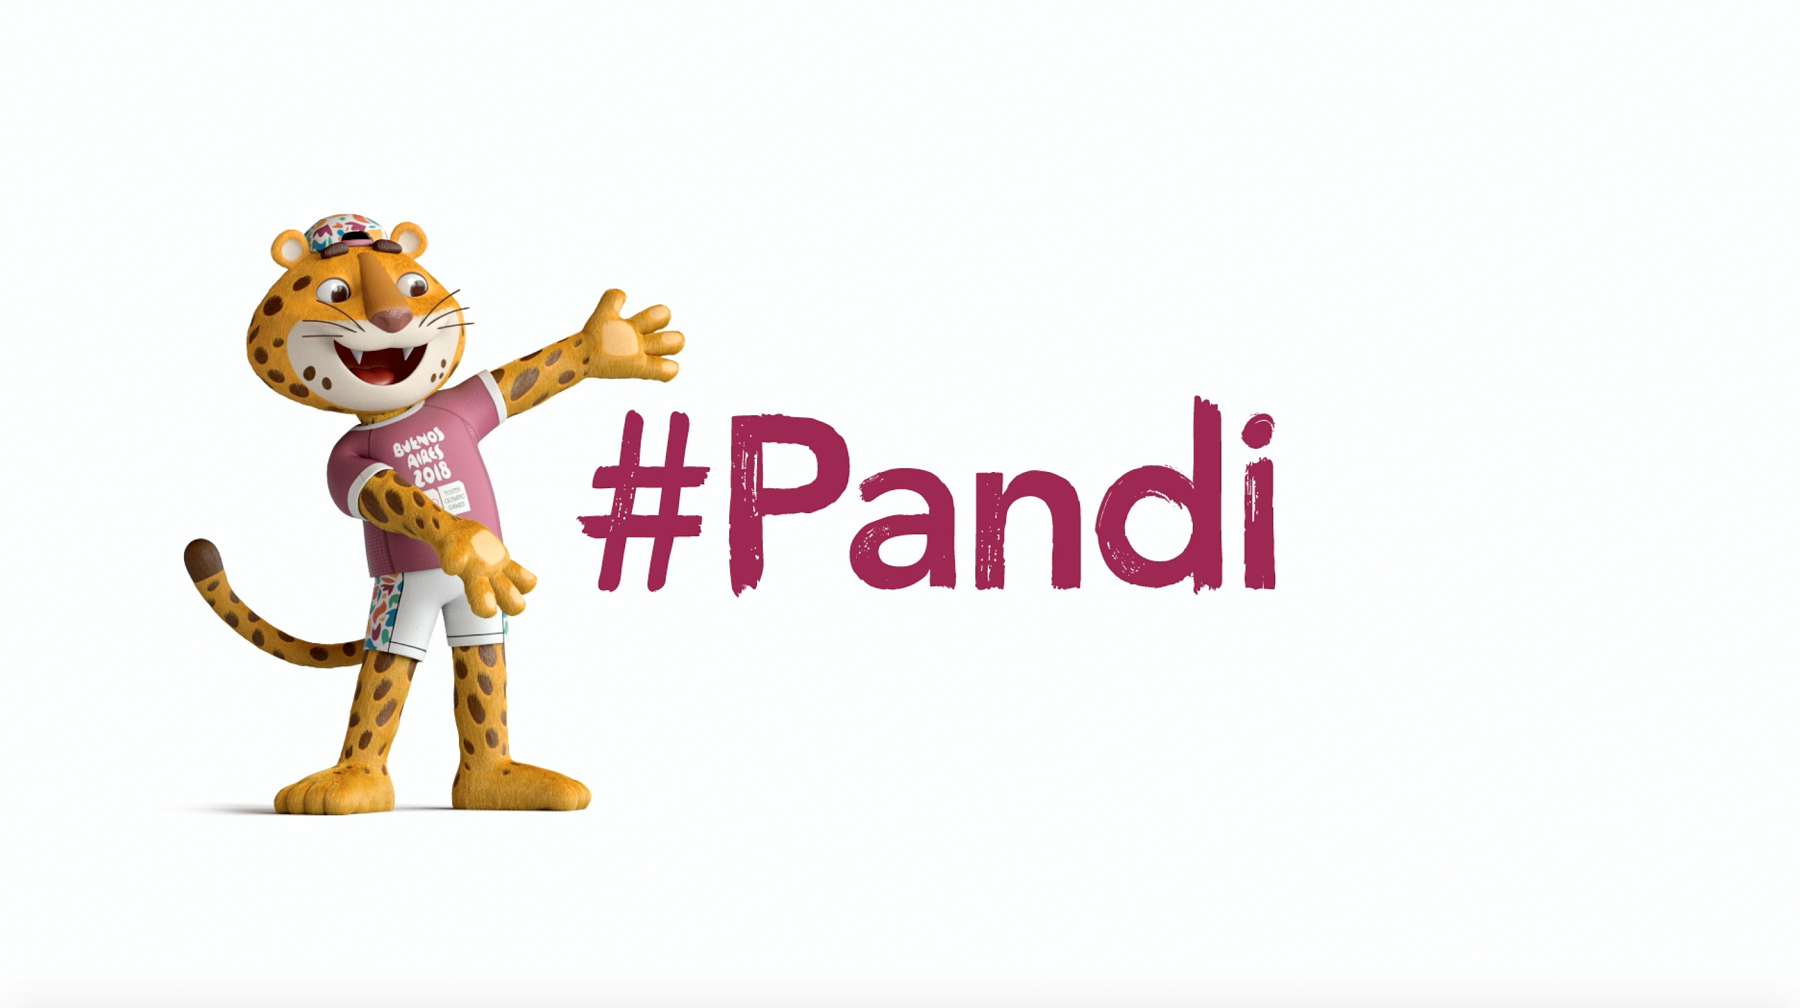 Buenos Aires 2018 unveils #Pandi the jaguar as official mascot